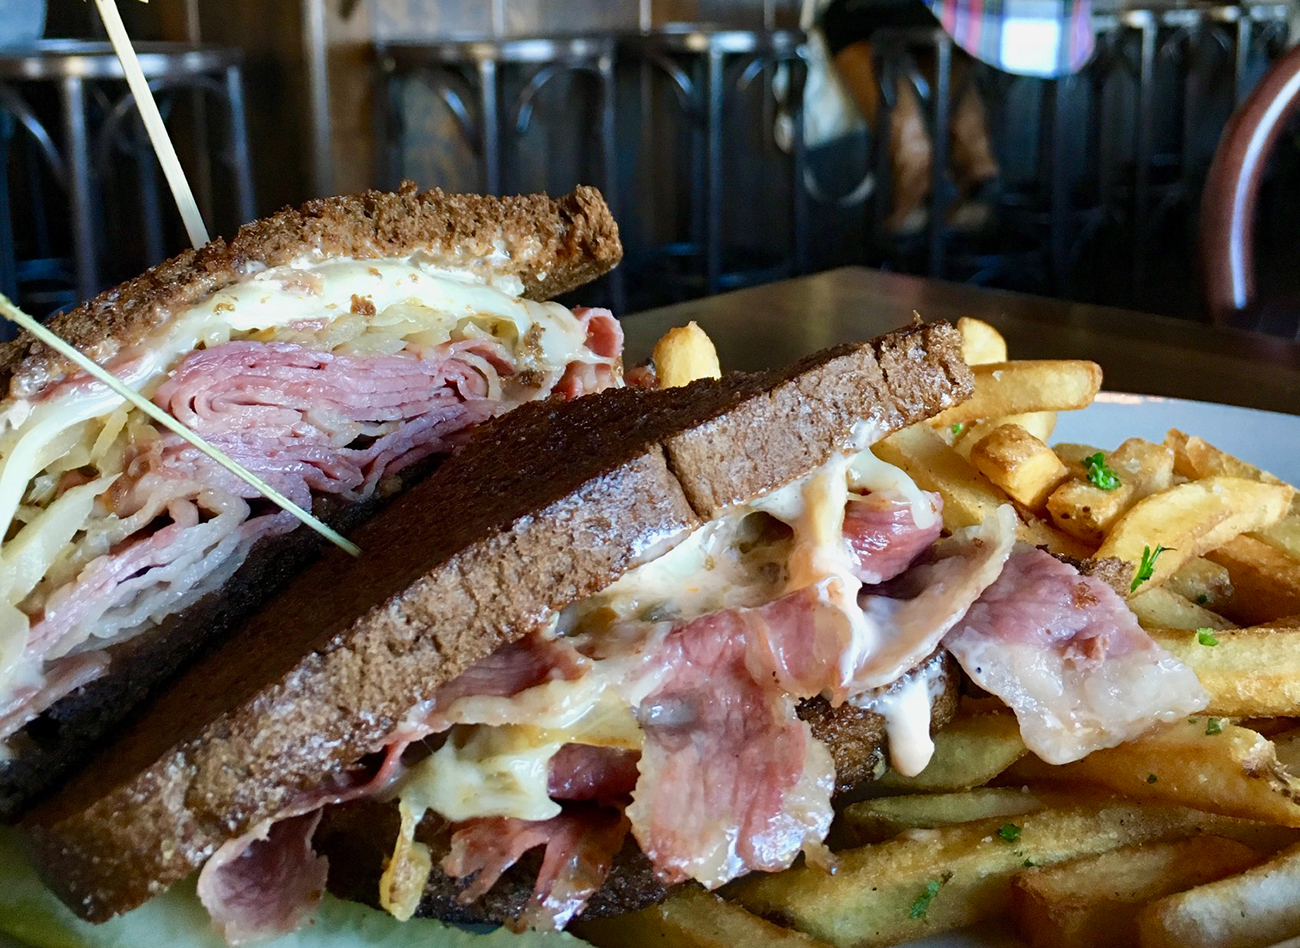 We ate all 39 Reuben sandwiches in Charlotte. Here are the 6 best